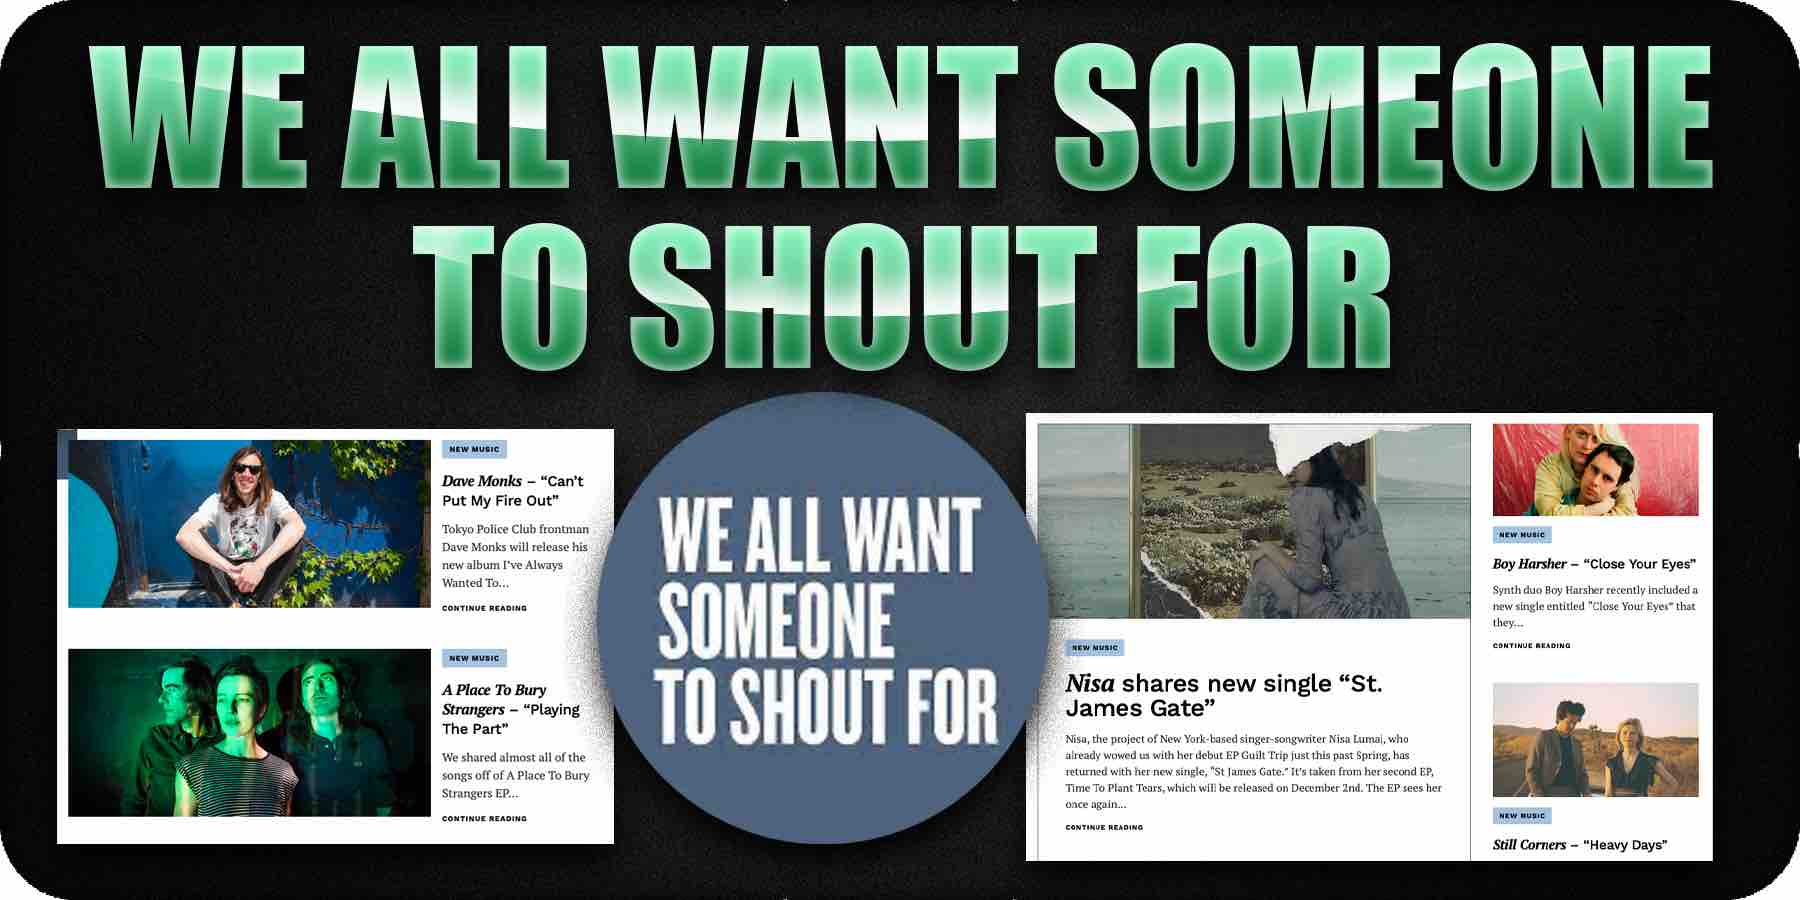 We all want someone to shout for (music blog)